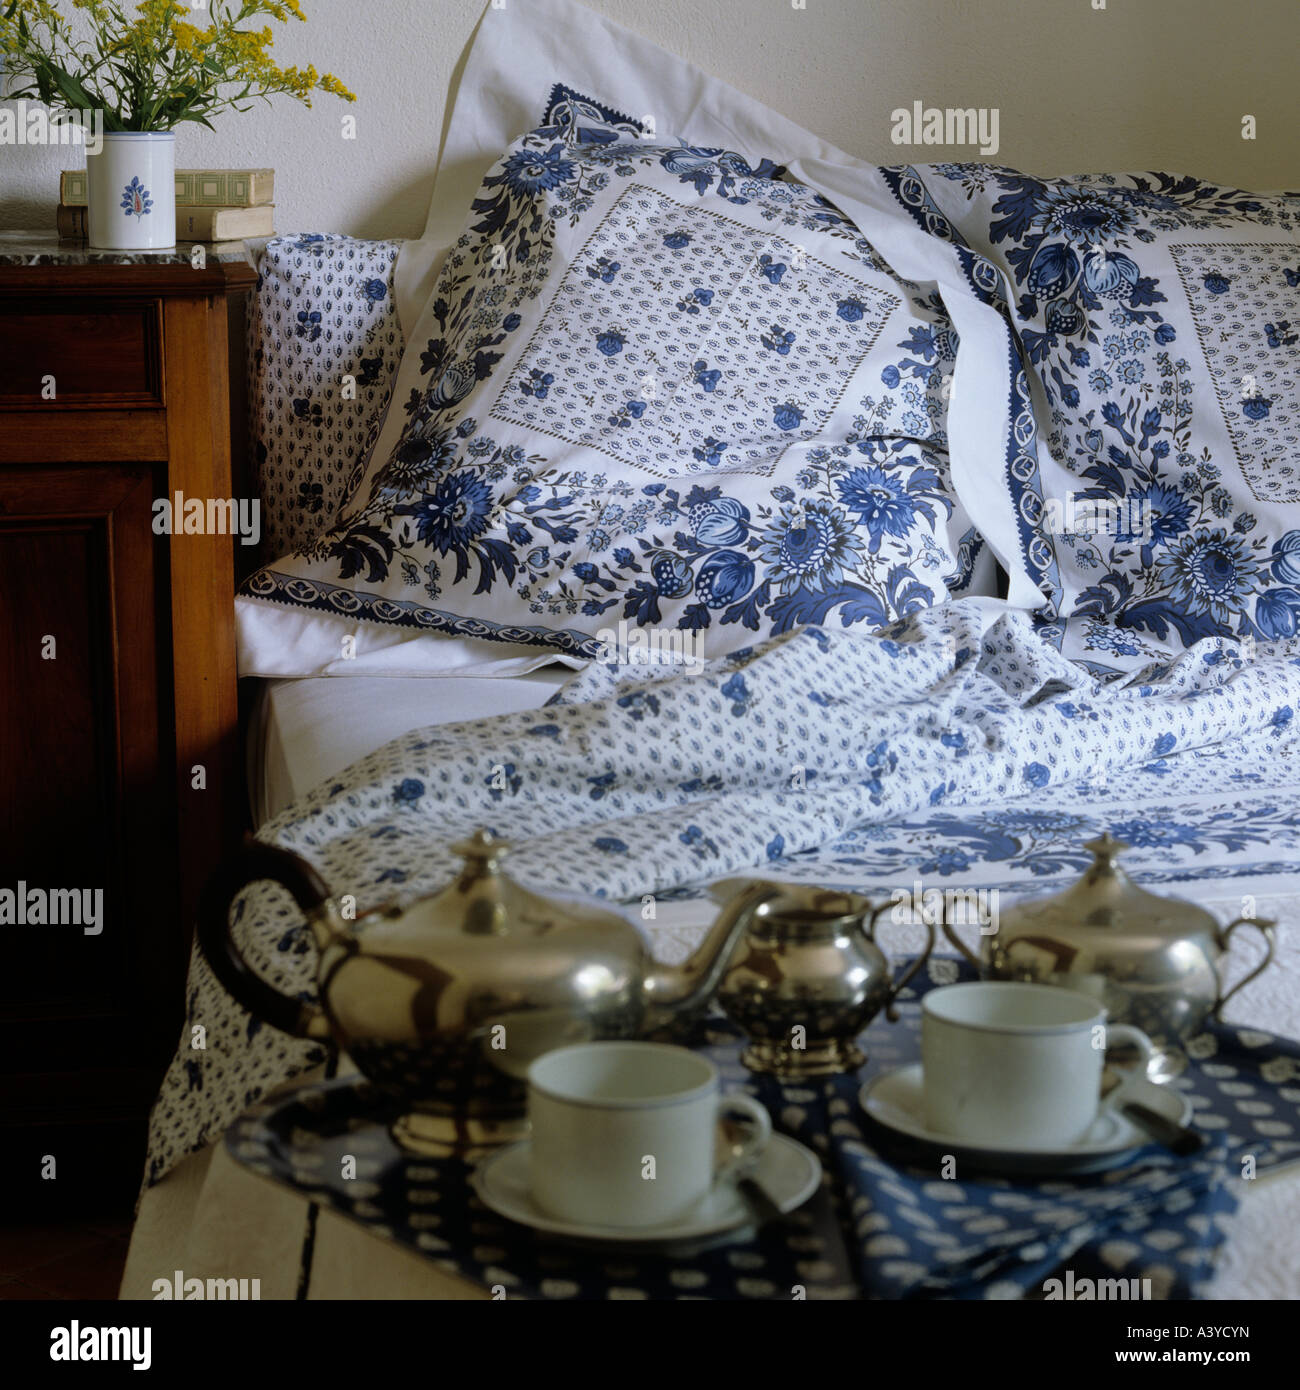 Provençal patterned bed linen from French firm Les Olivades - Stock Image